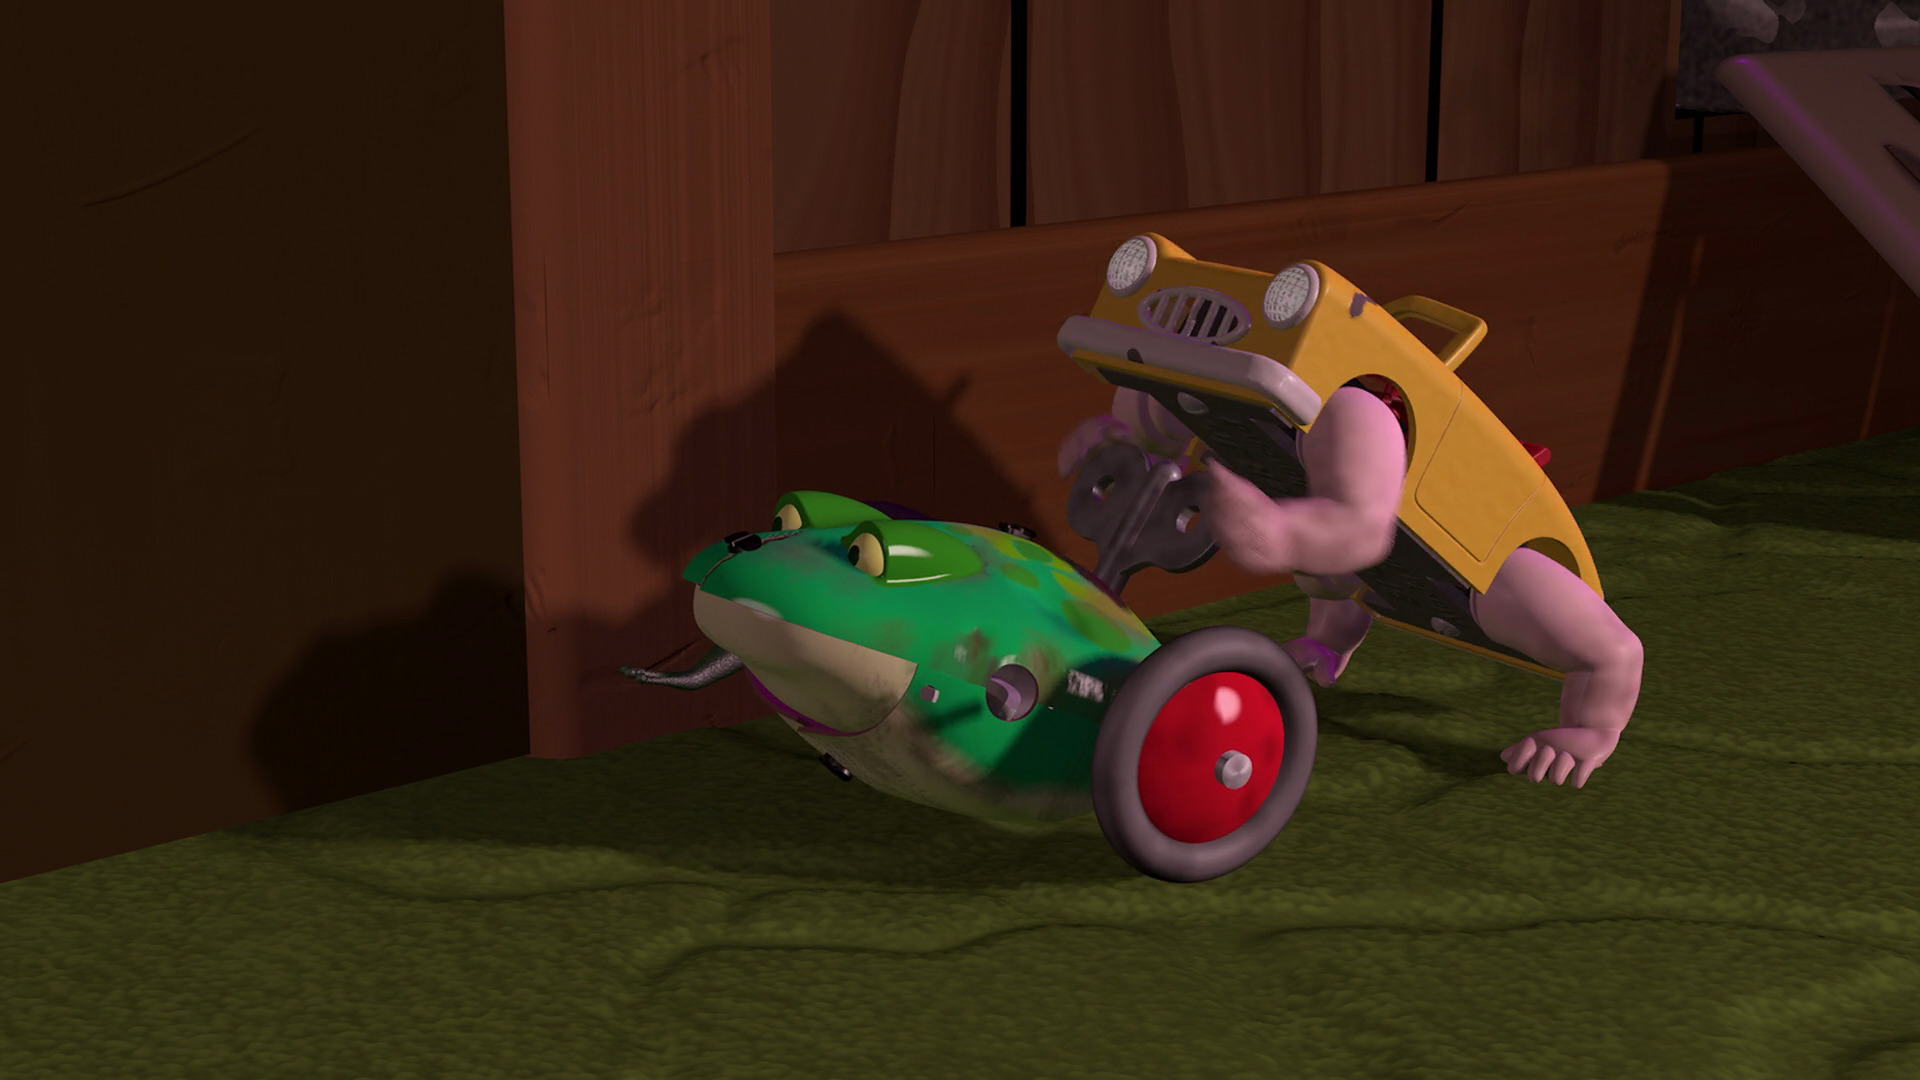 voiture-balai-personnage-toy-story-01